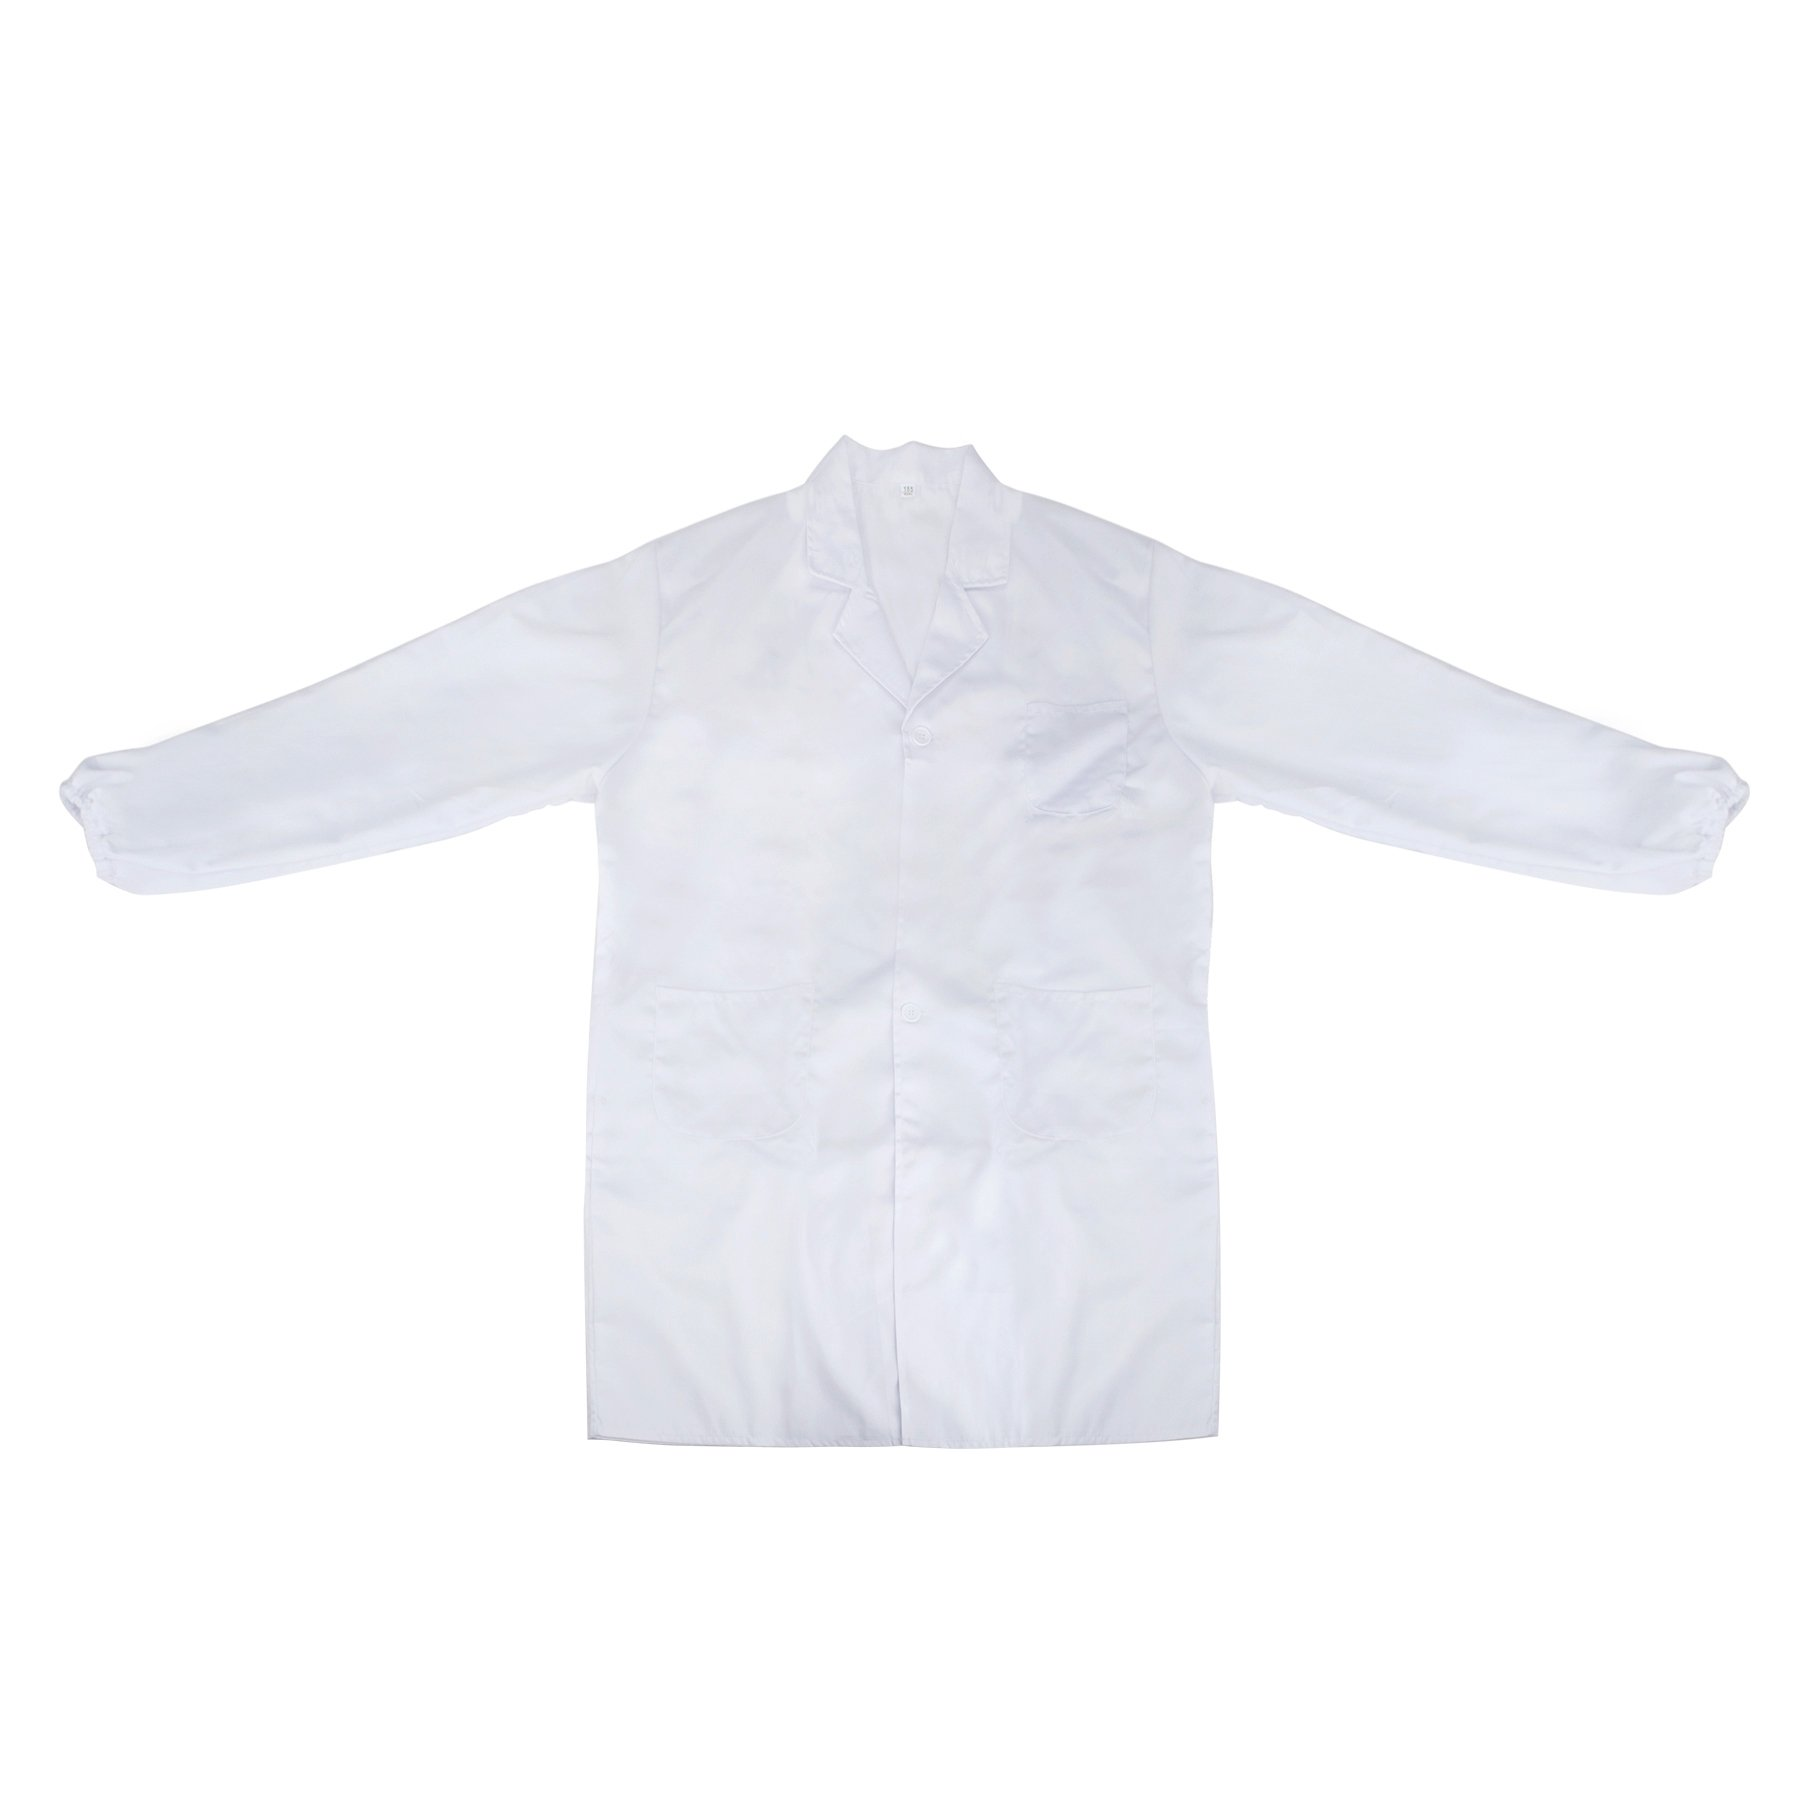 TopTie Kids White Lab Coats Child Costume for Scientists or Doctors-White-10/12